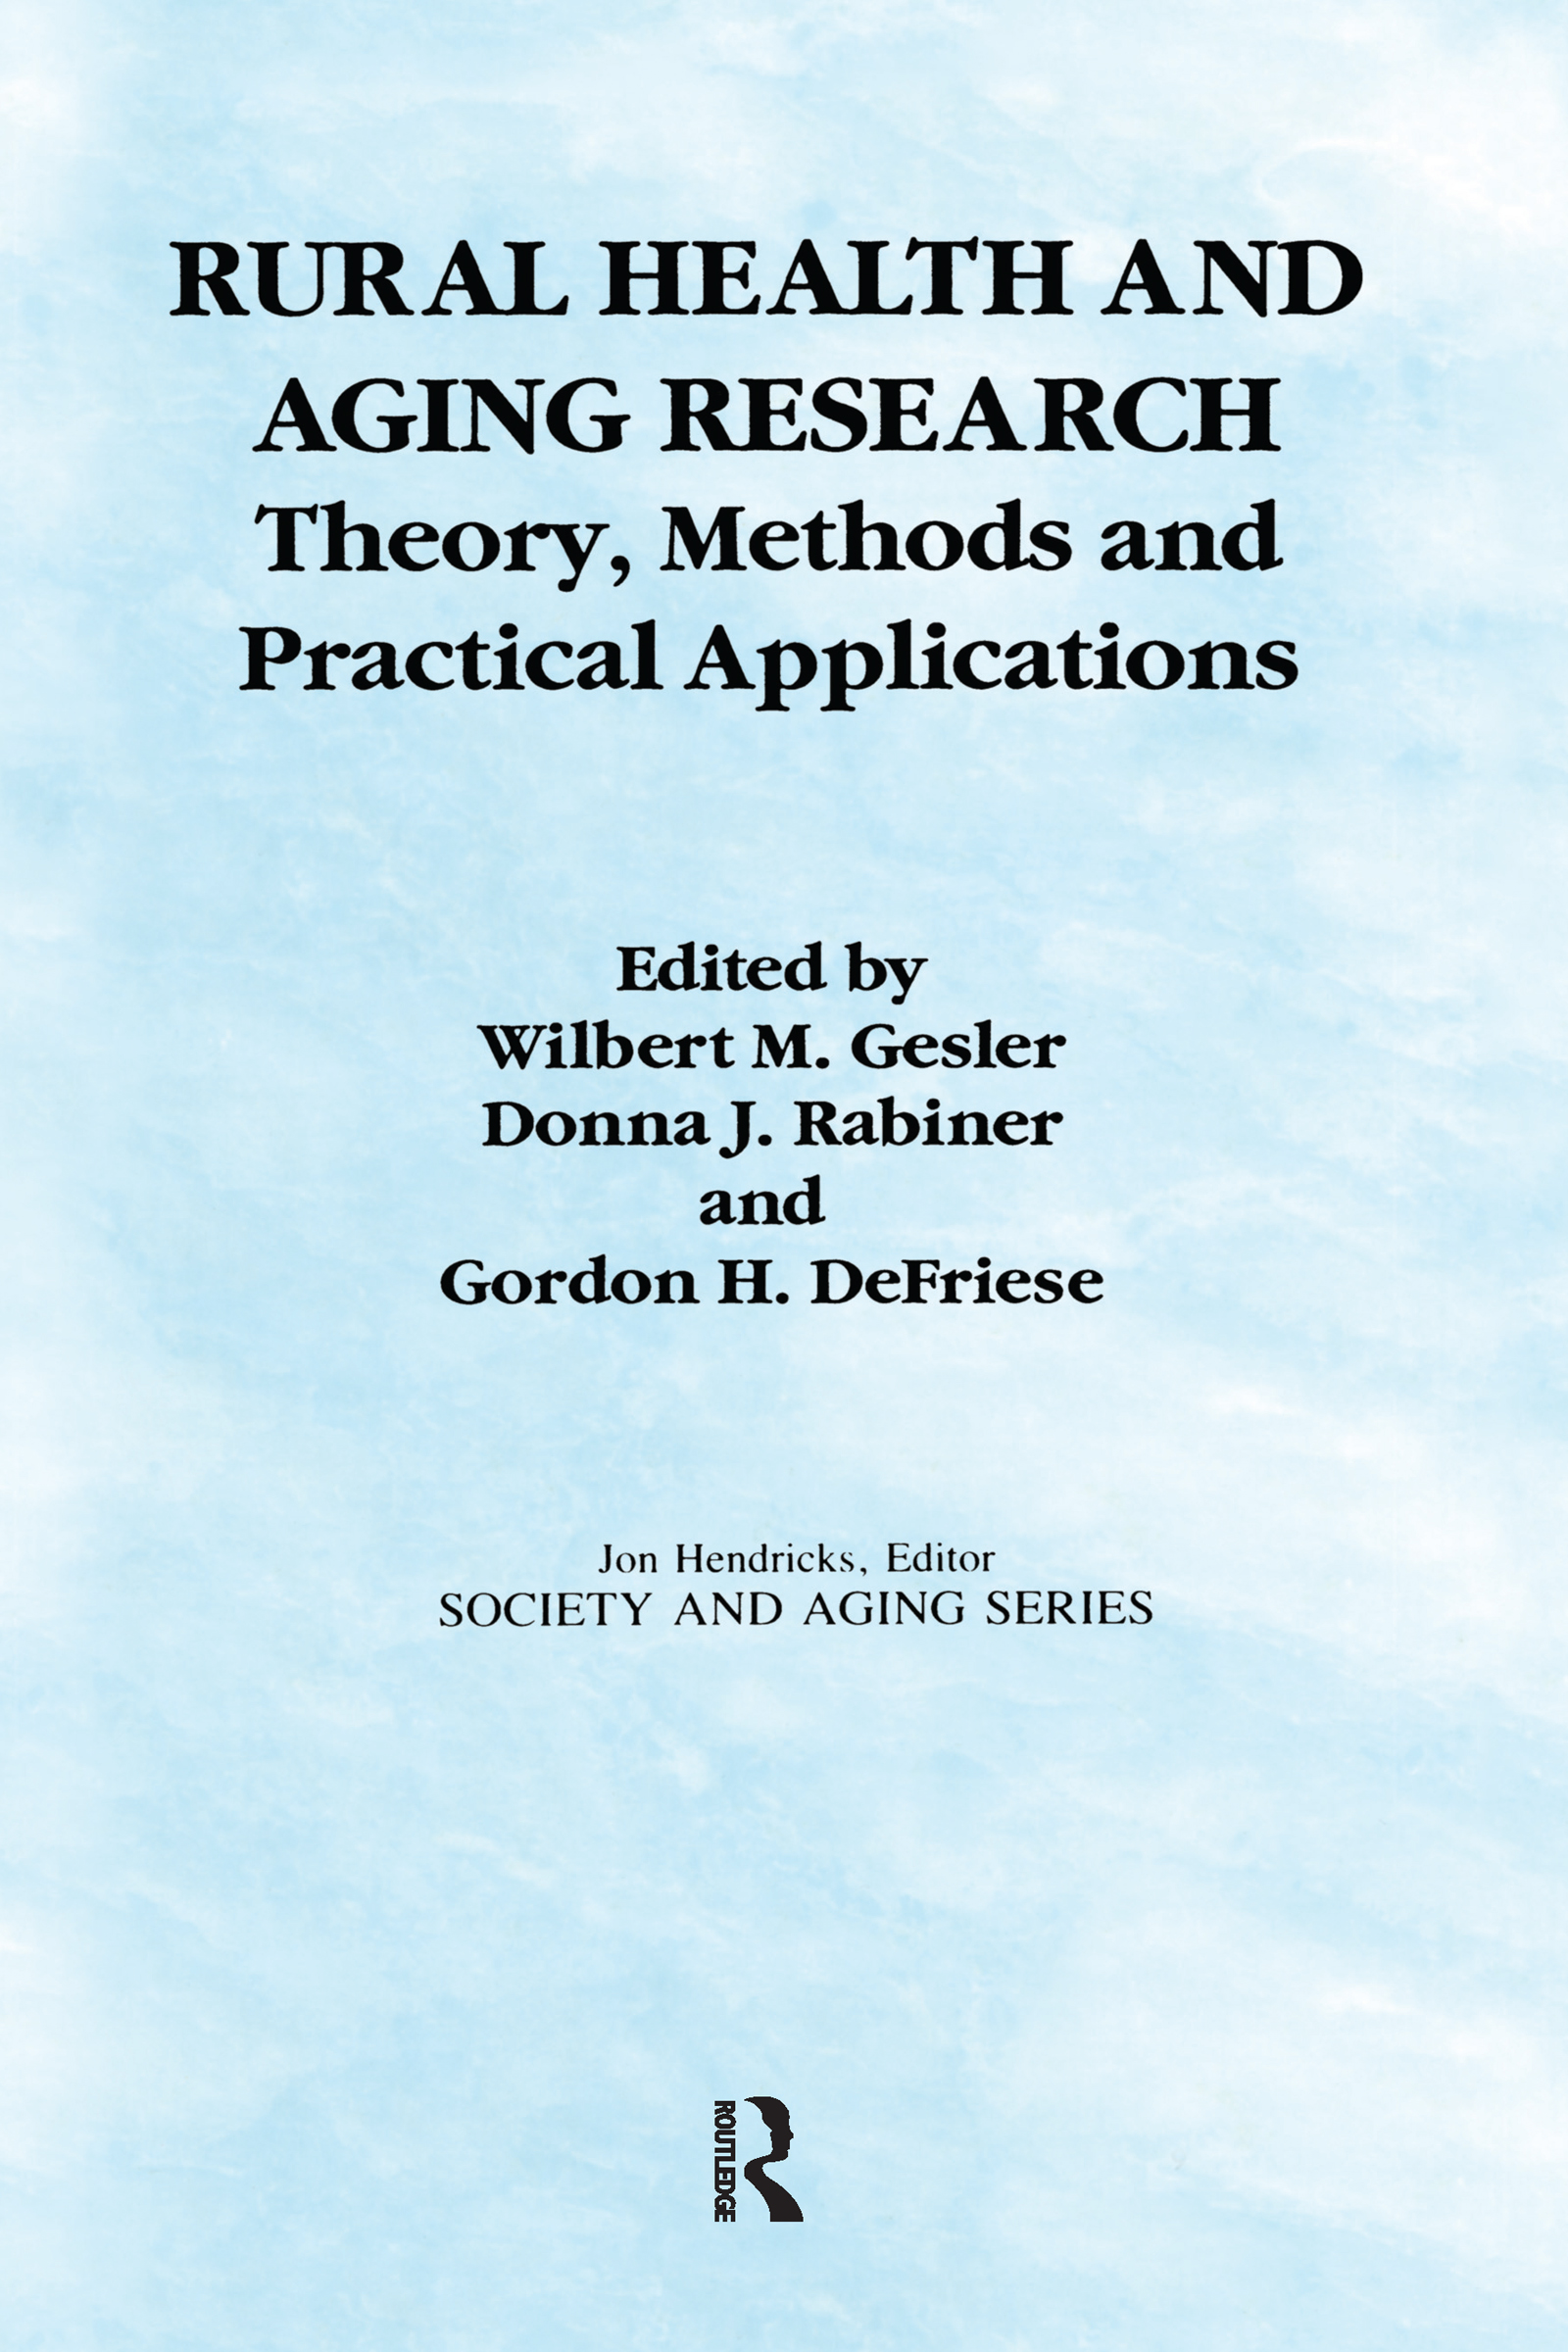 Rural Health and Aging Research: Theory, Methods, and Practical Applications book cover